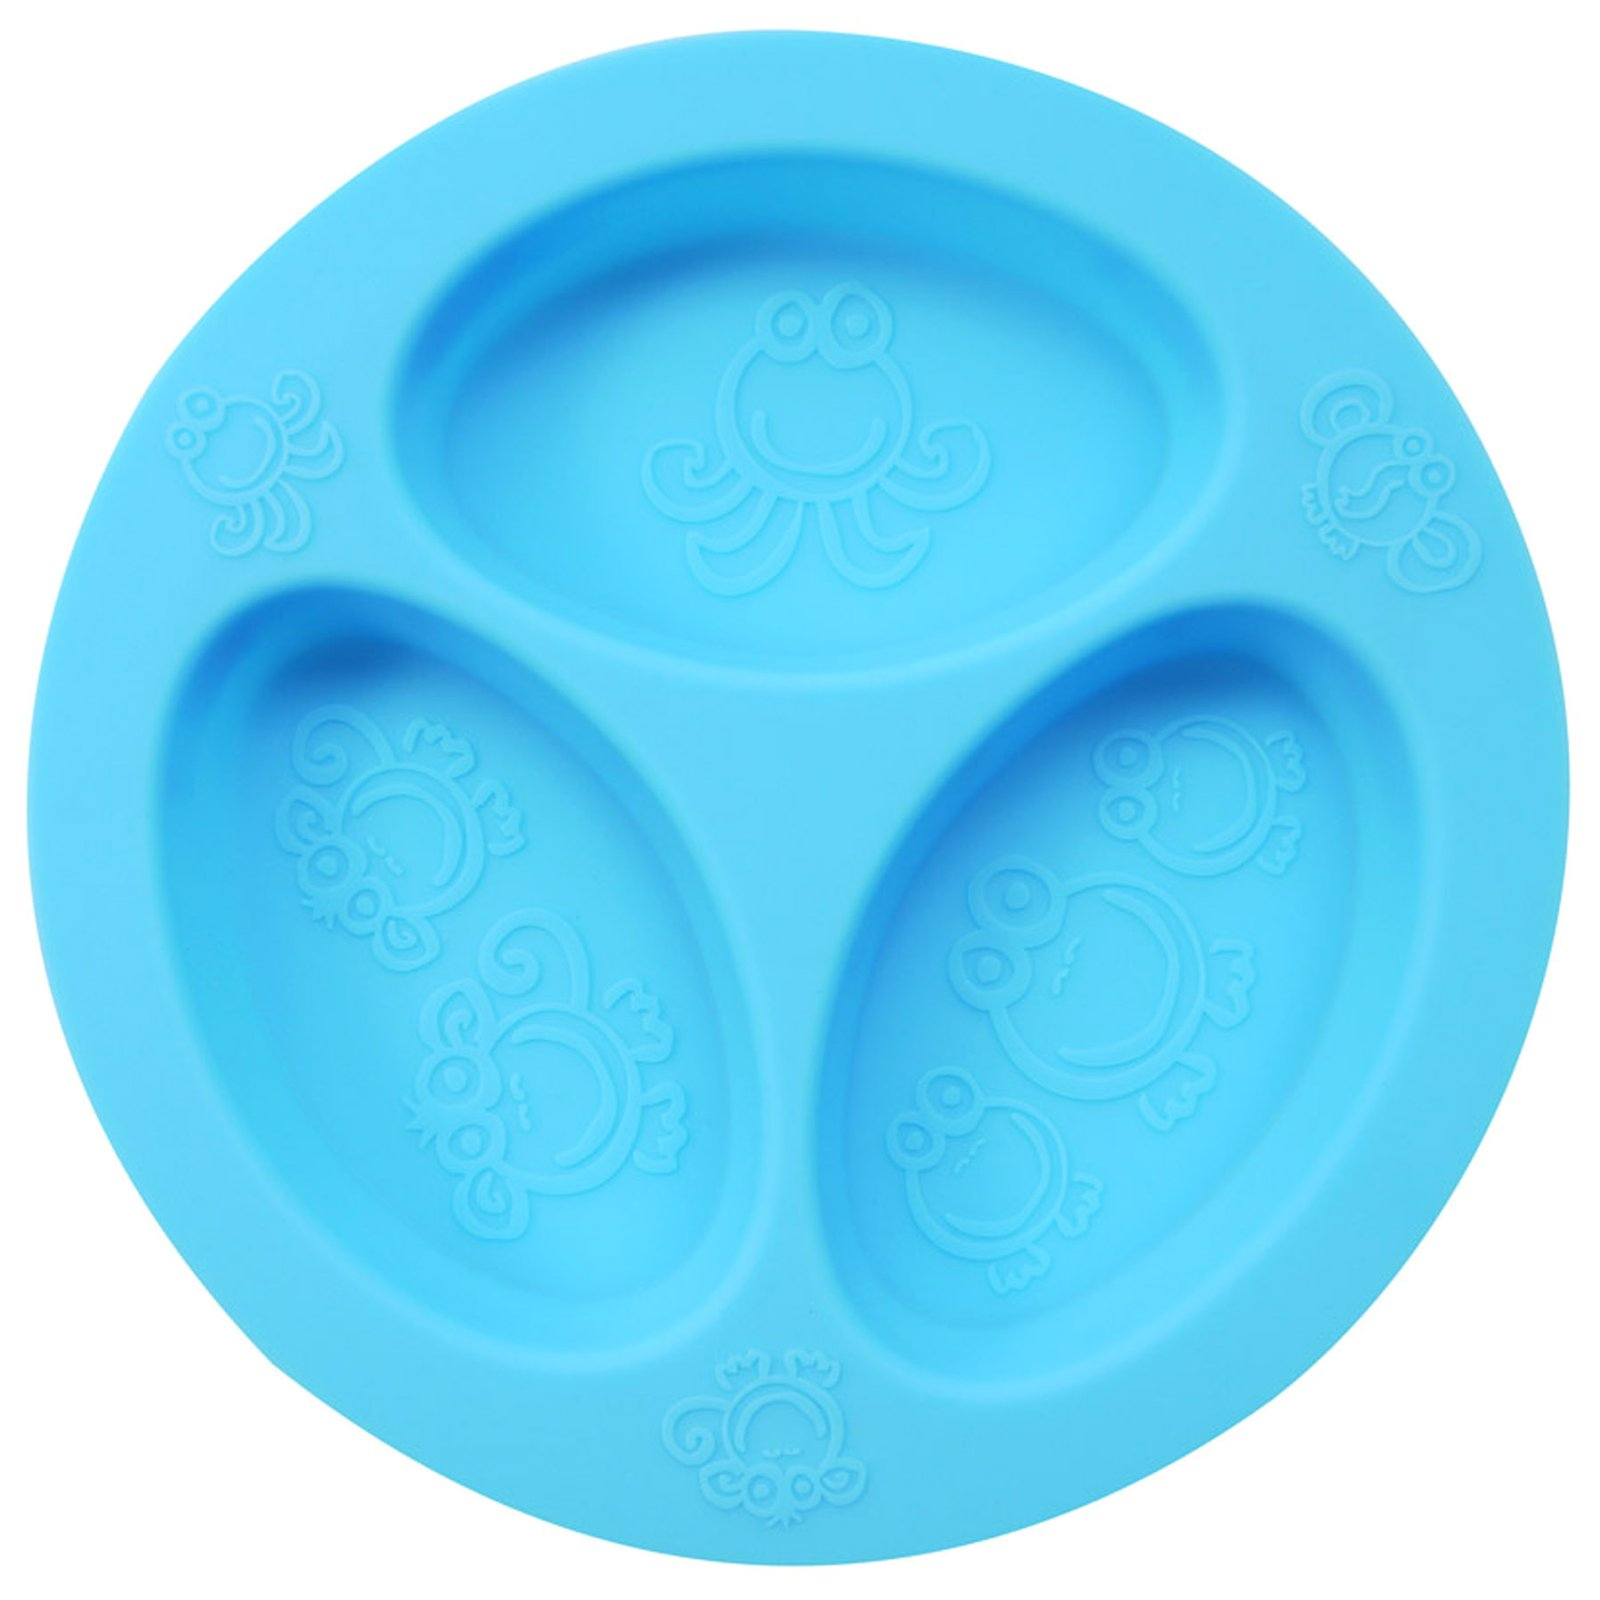 oogaa Baby and Toddler Divided Plate - Blue - 1 ct.